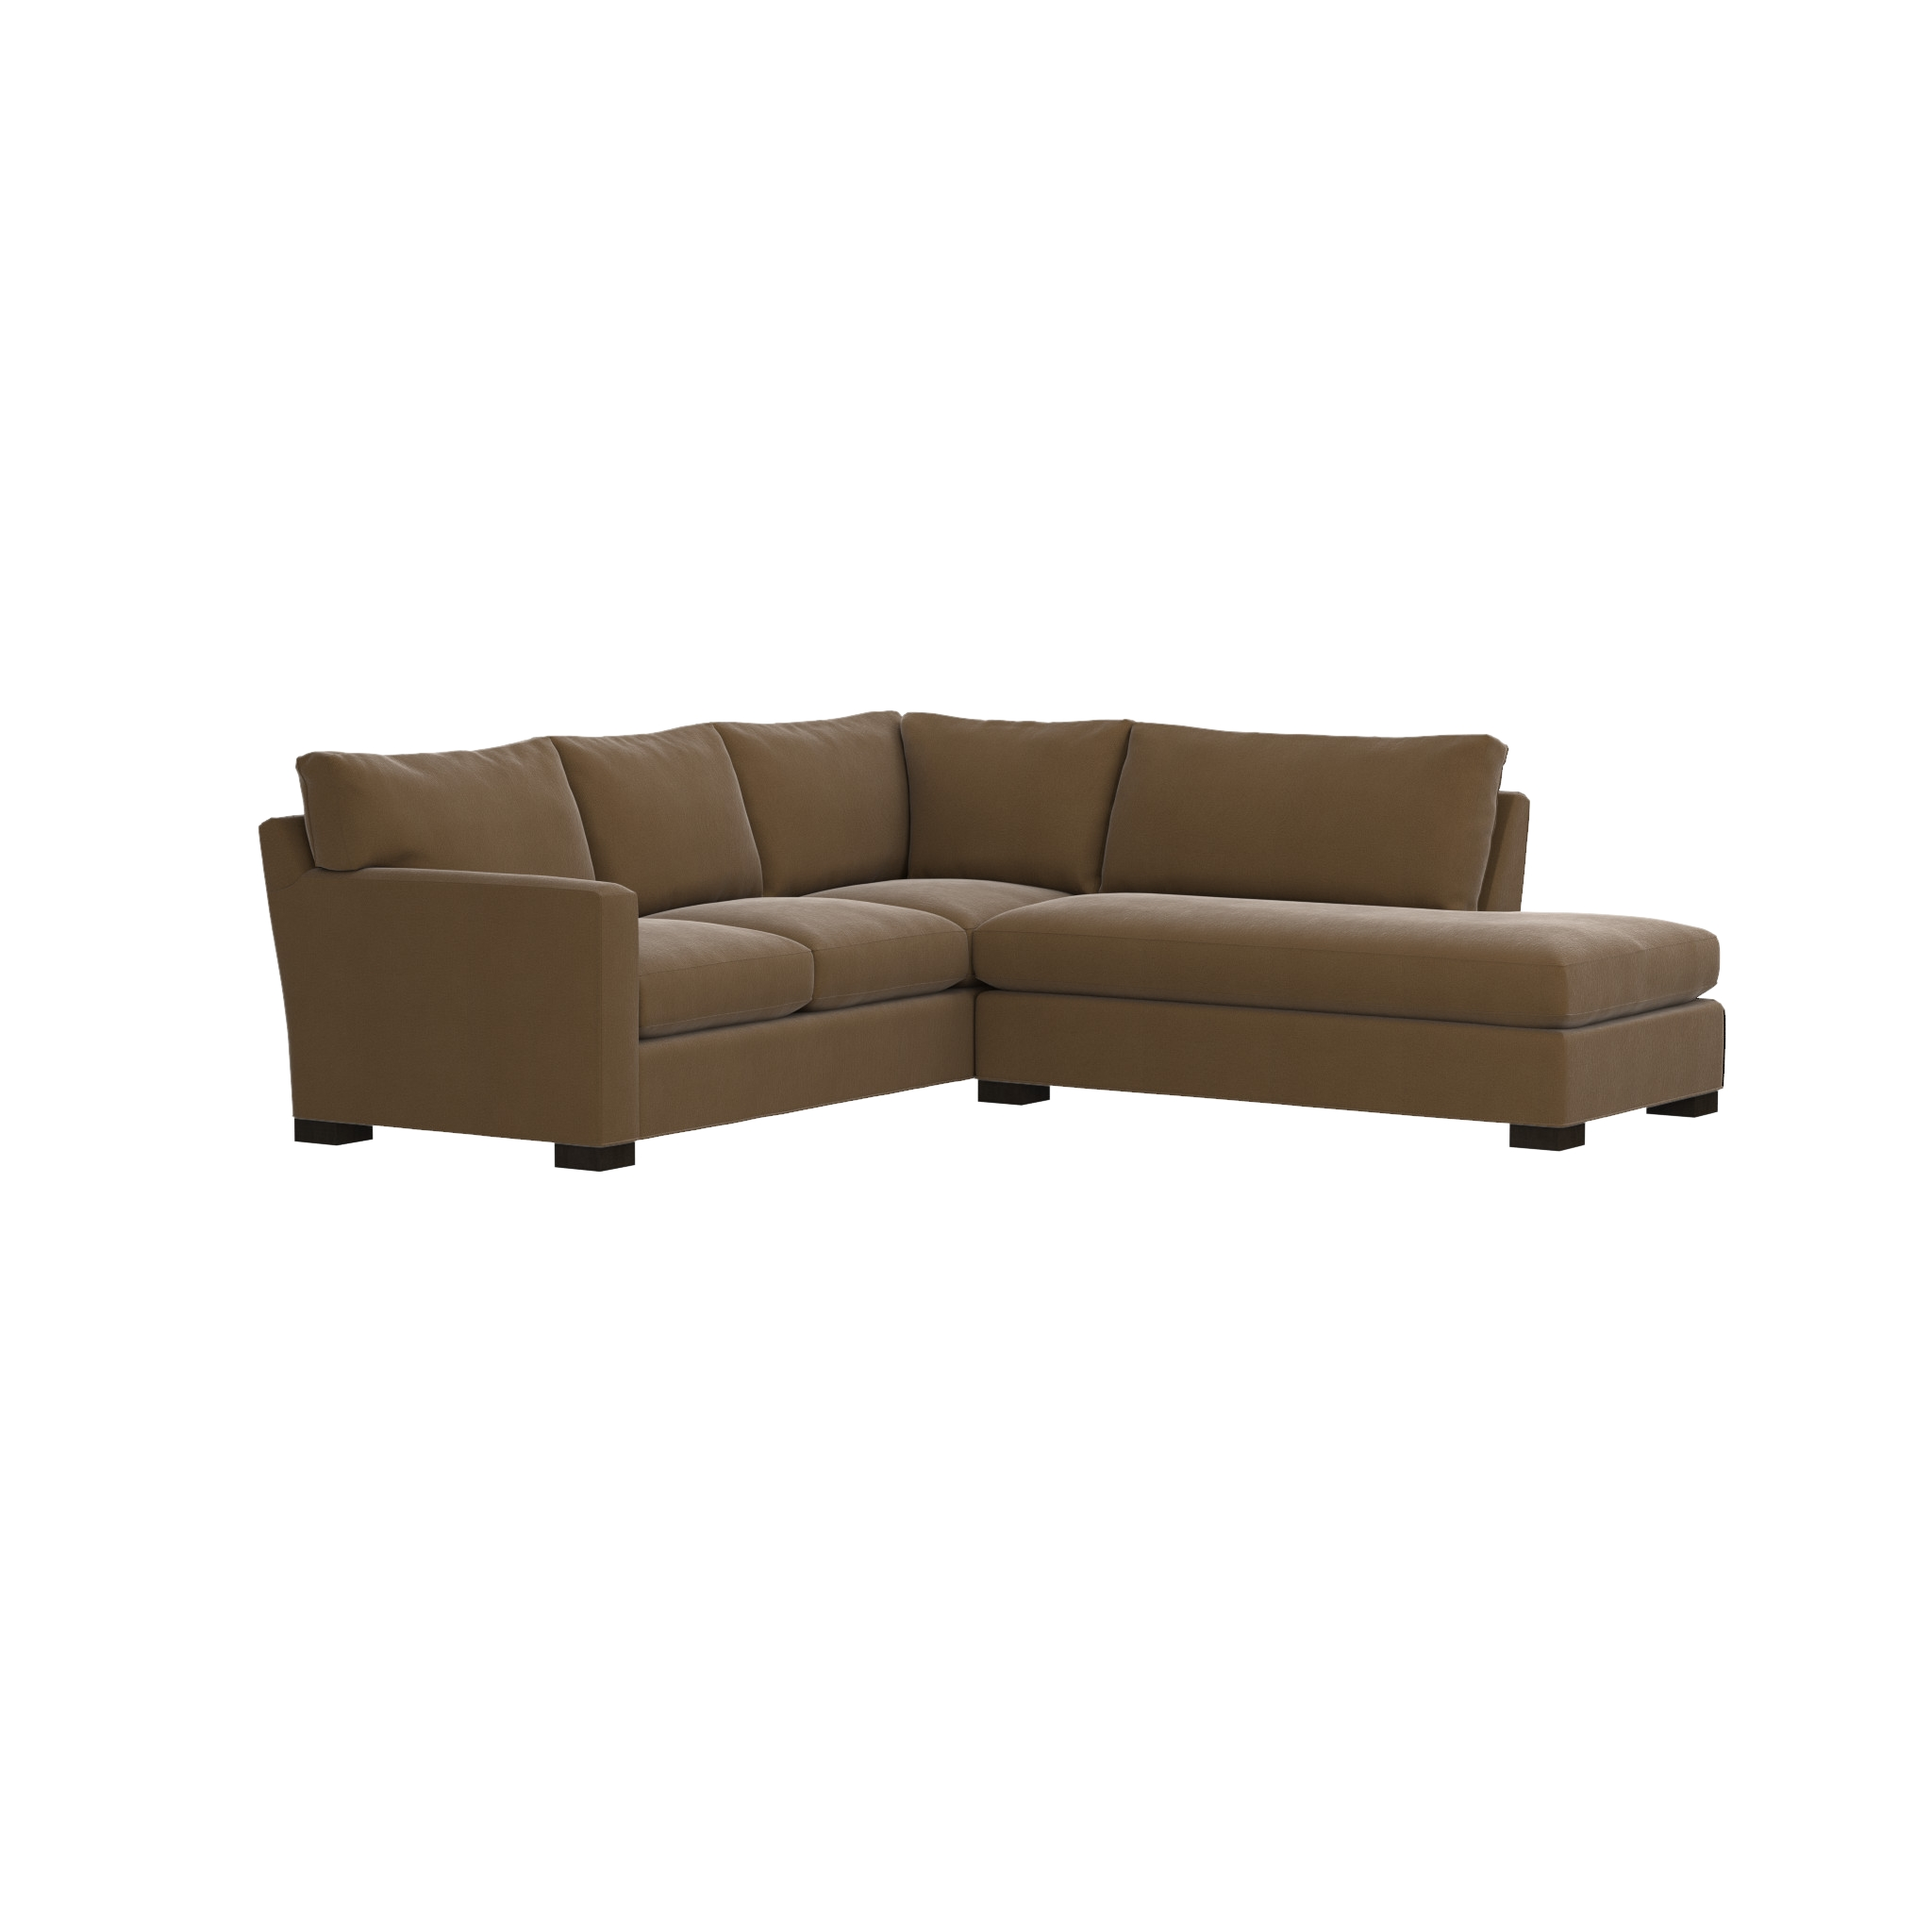 Axis Ii Bumper Sectional | Crate And Barrel Regarding Crate And Barrel Sectional (Image 9 of 15)